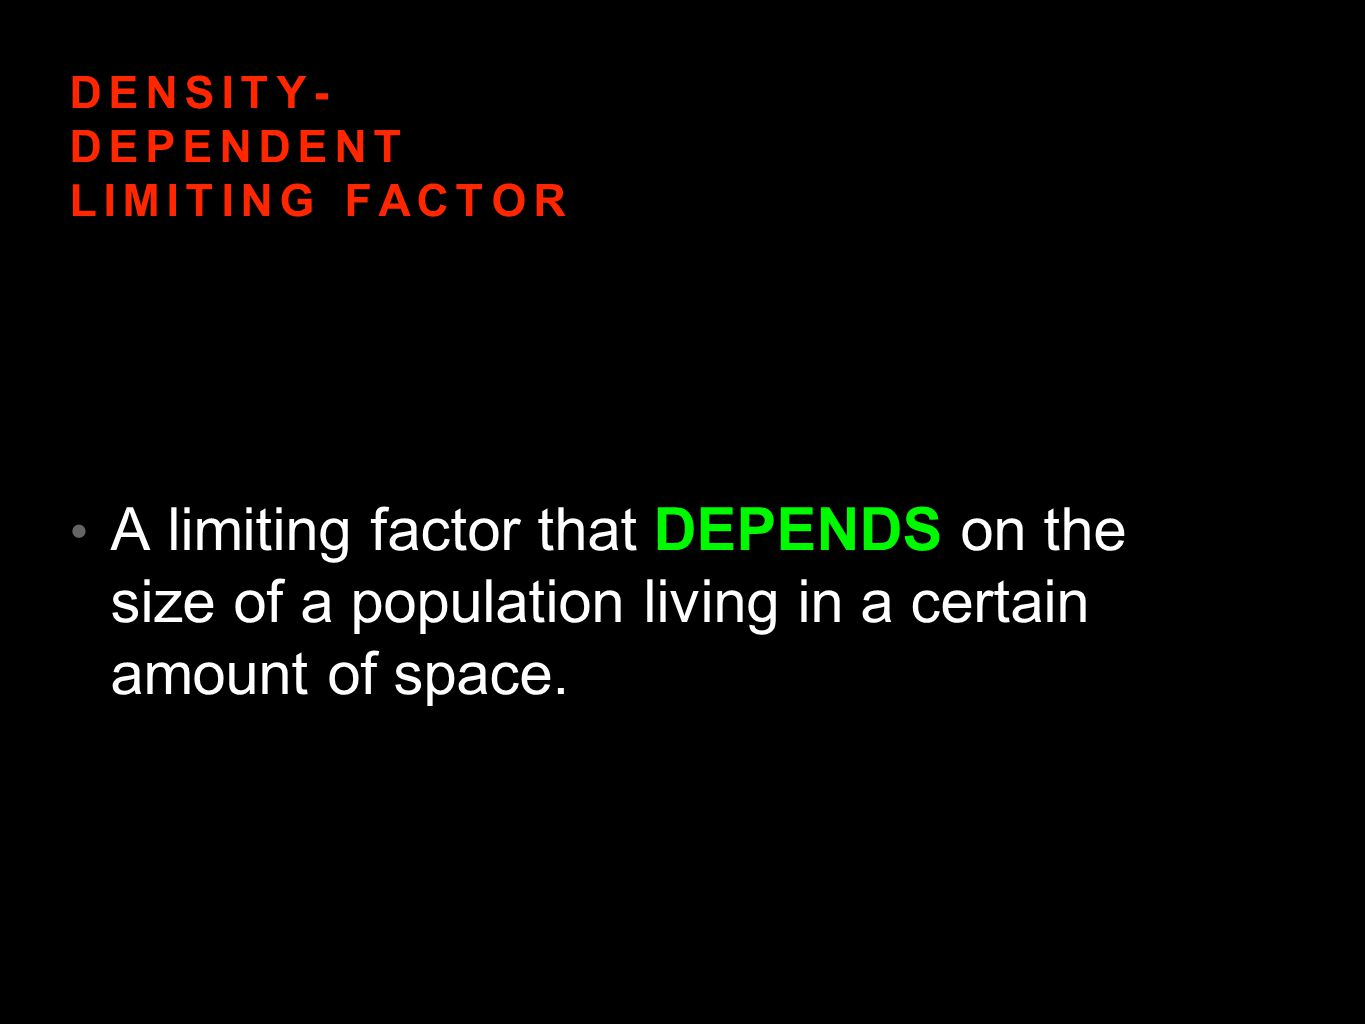 DENSITY DEPENDENT LIMITING FACTORS INCLUDE: Competition- competing for the same resource Predation-One kills and eats another Parasitism- One organism benefits at the expense of another Diseases- Spread by pathogens